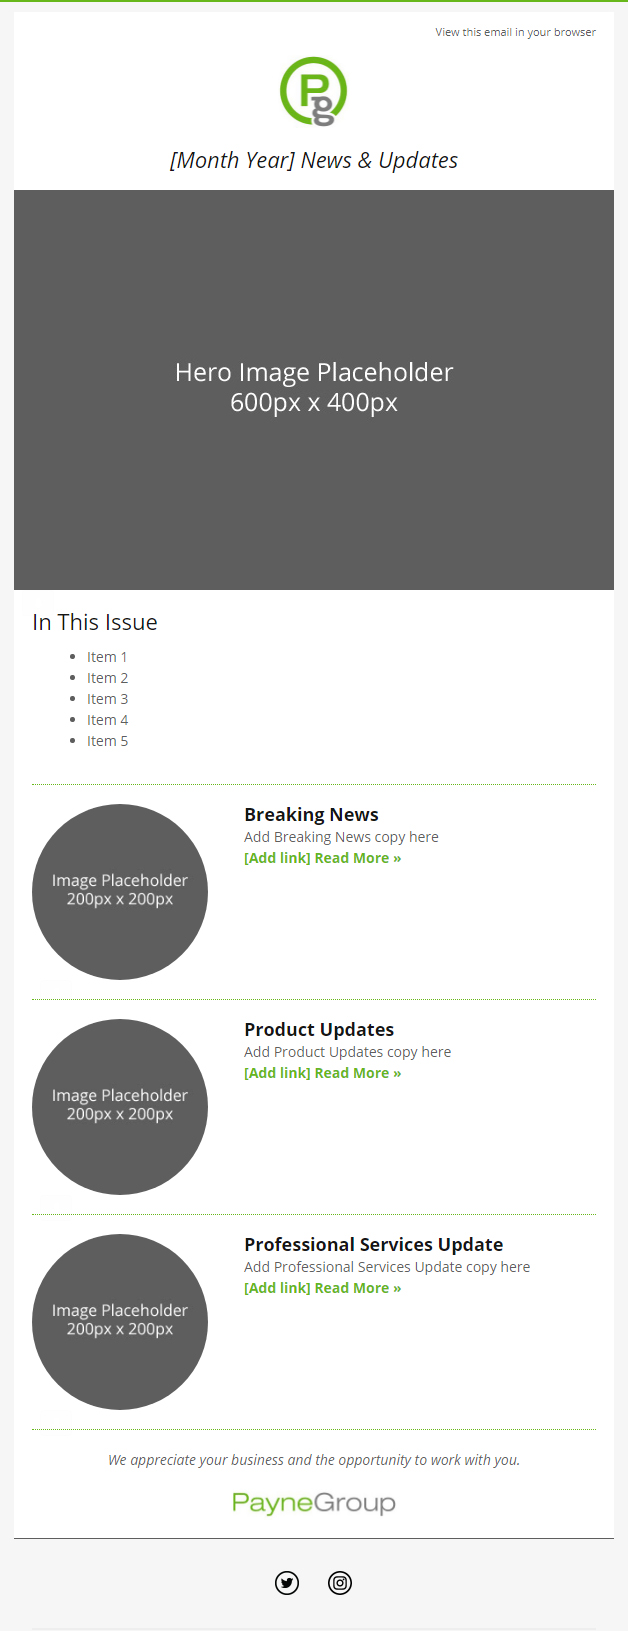 PayneGroup Responsive Email Design